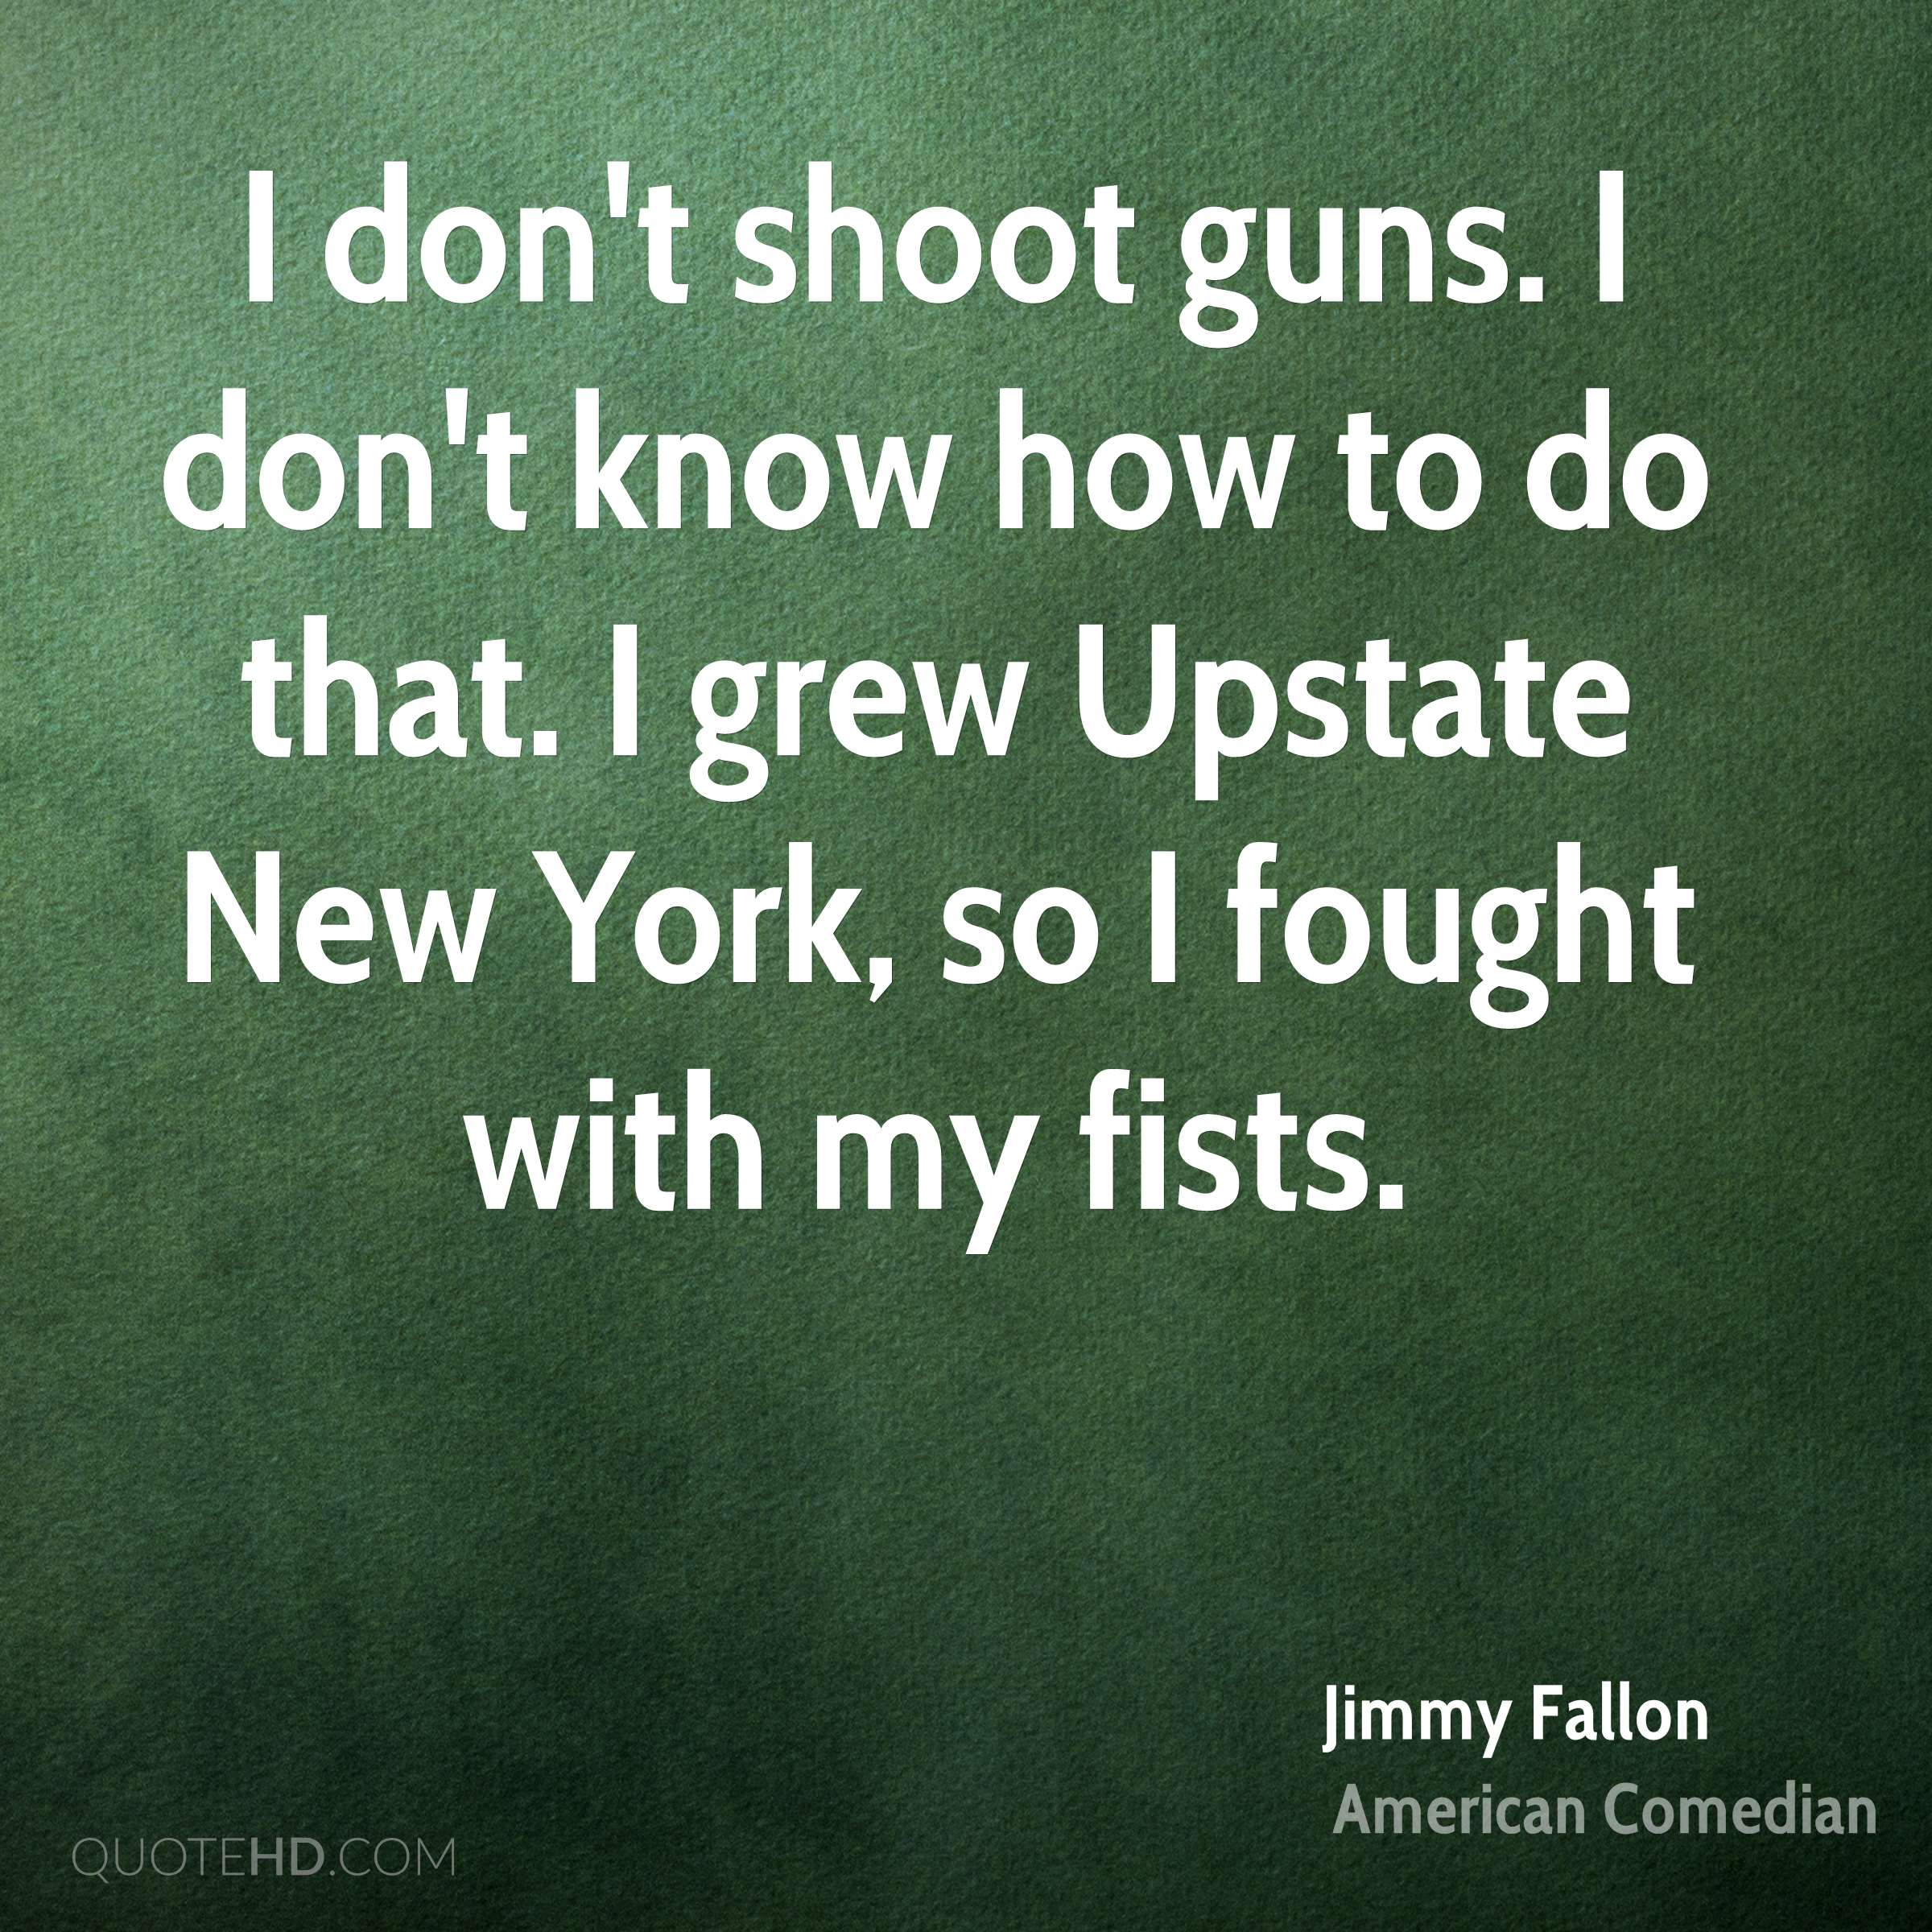 I don't shoot guns. I don't know how to do that. I grew Upstate New York, so I fought with my fists.